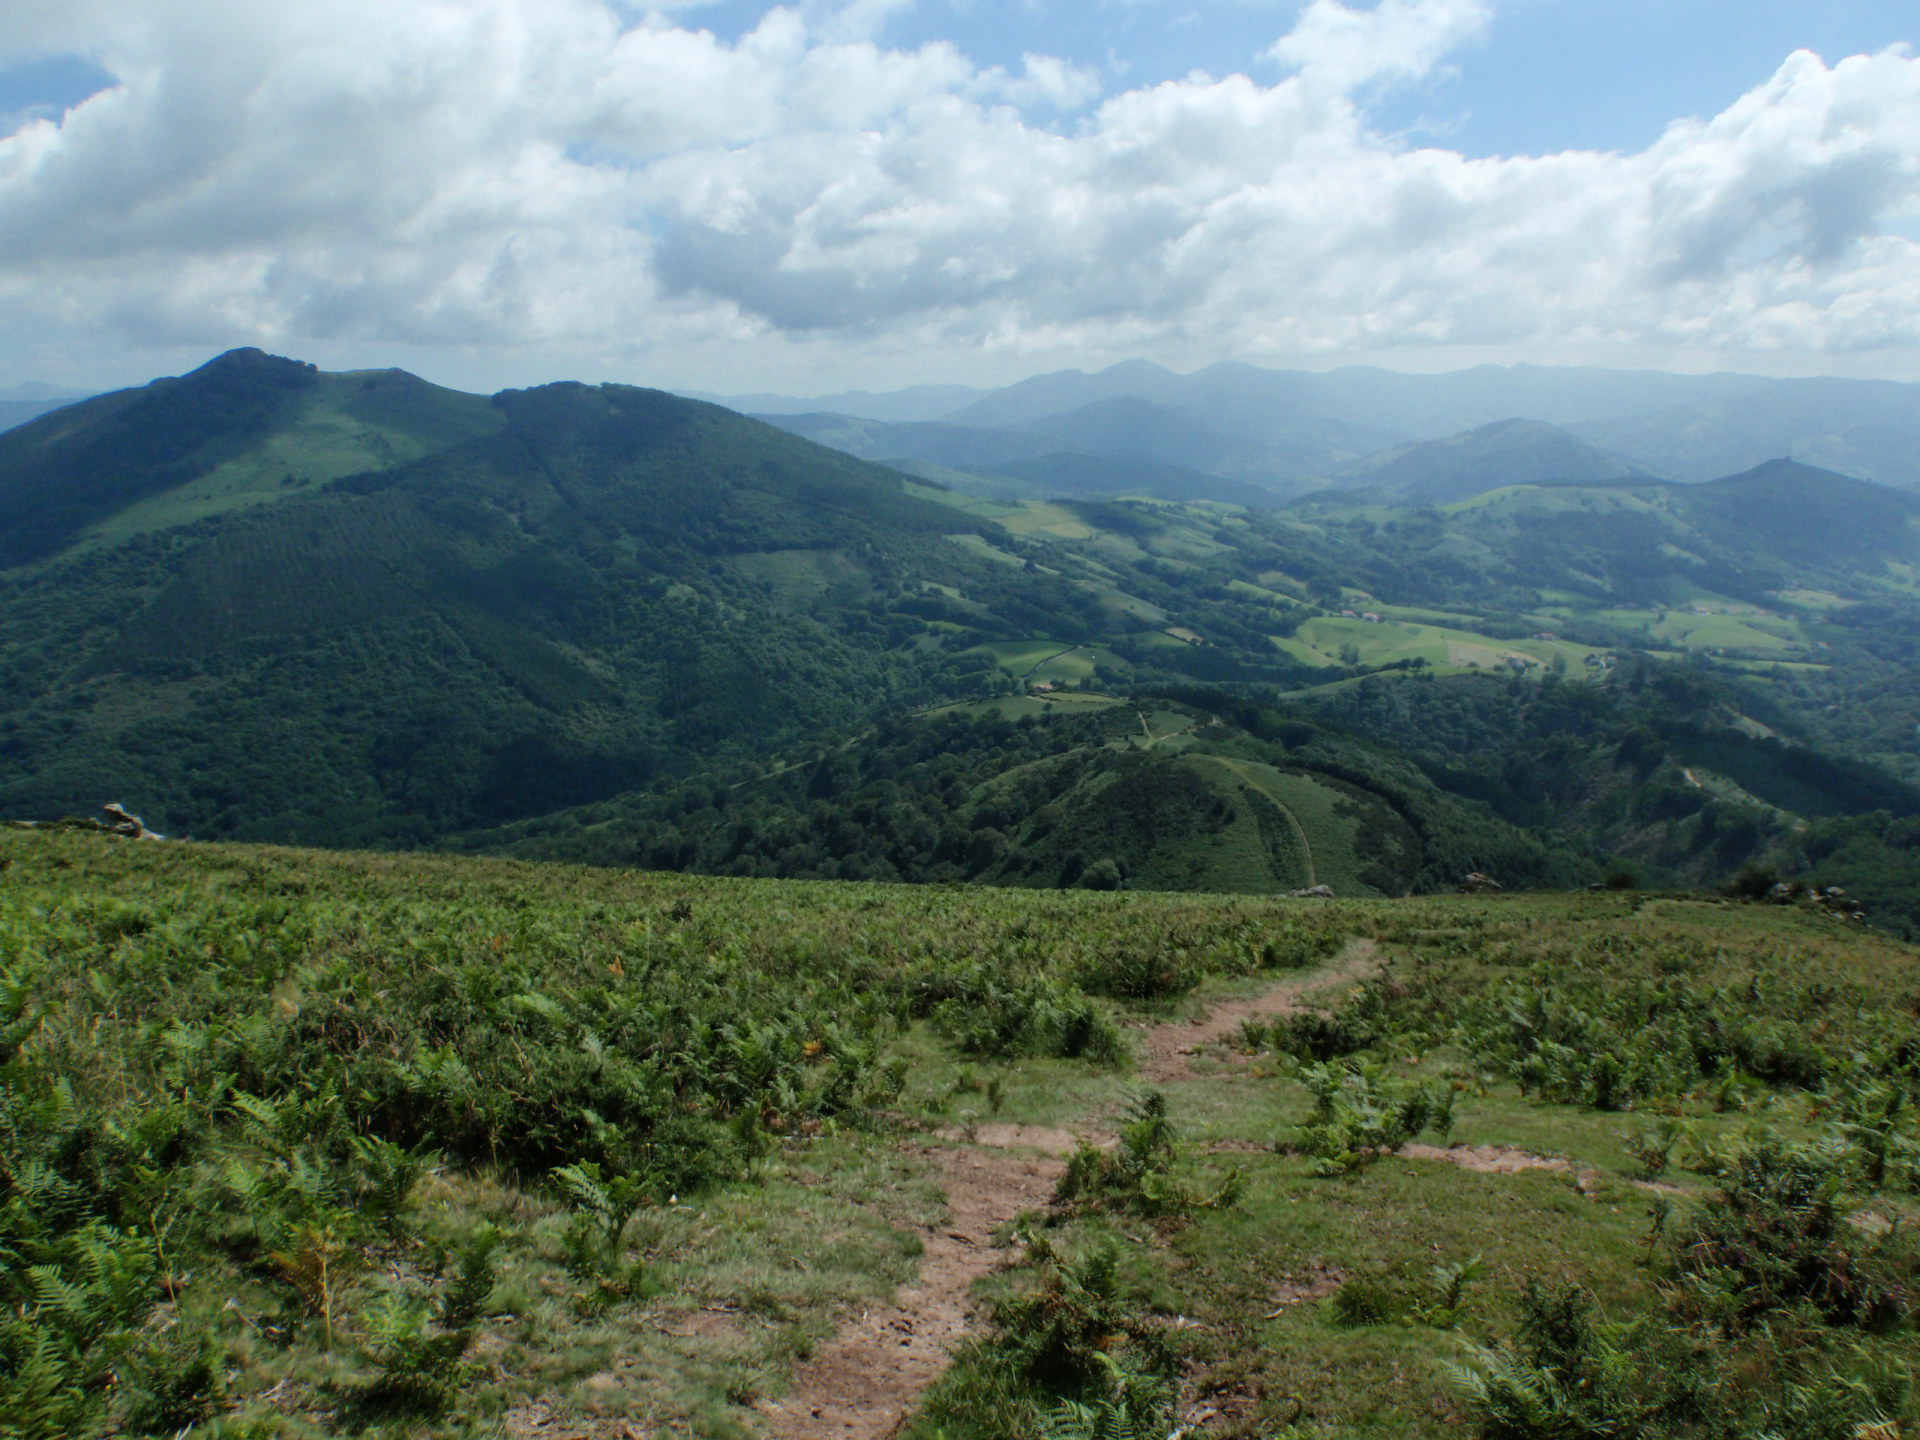 A taste of the Pyrenees: (1) The Basque Country